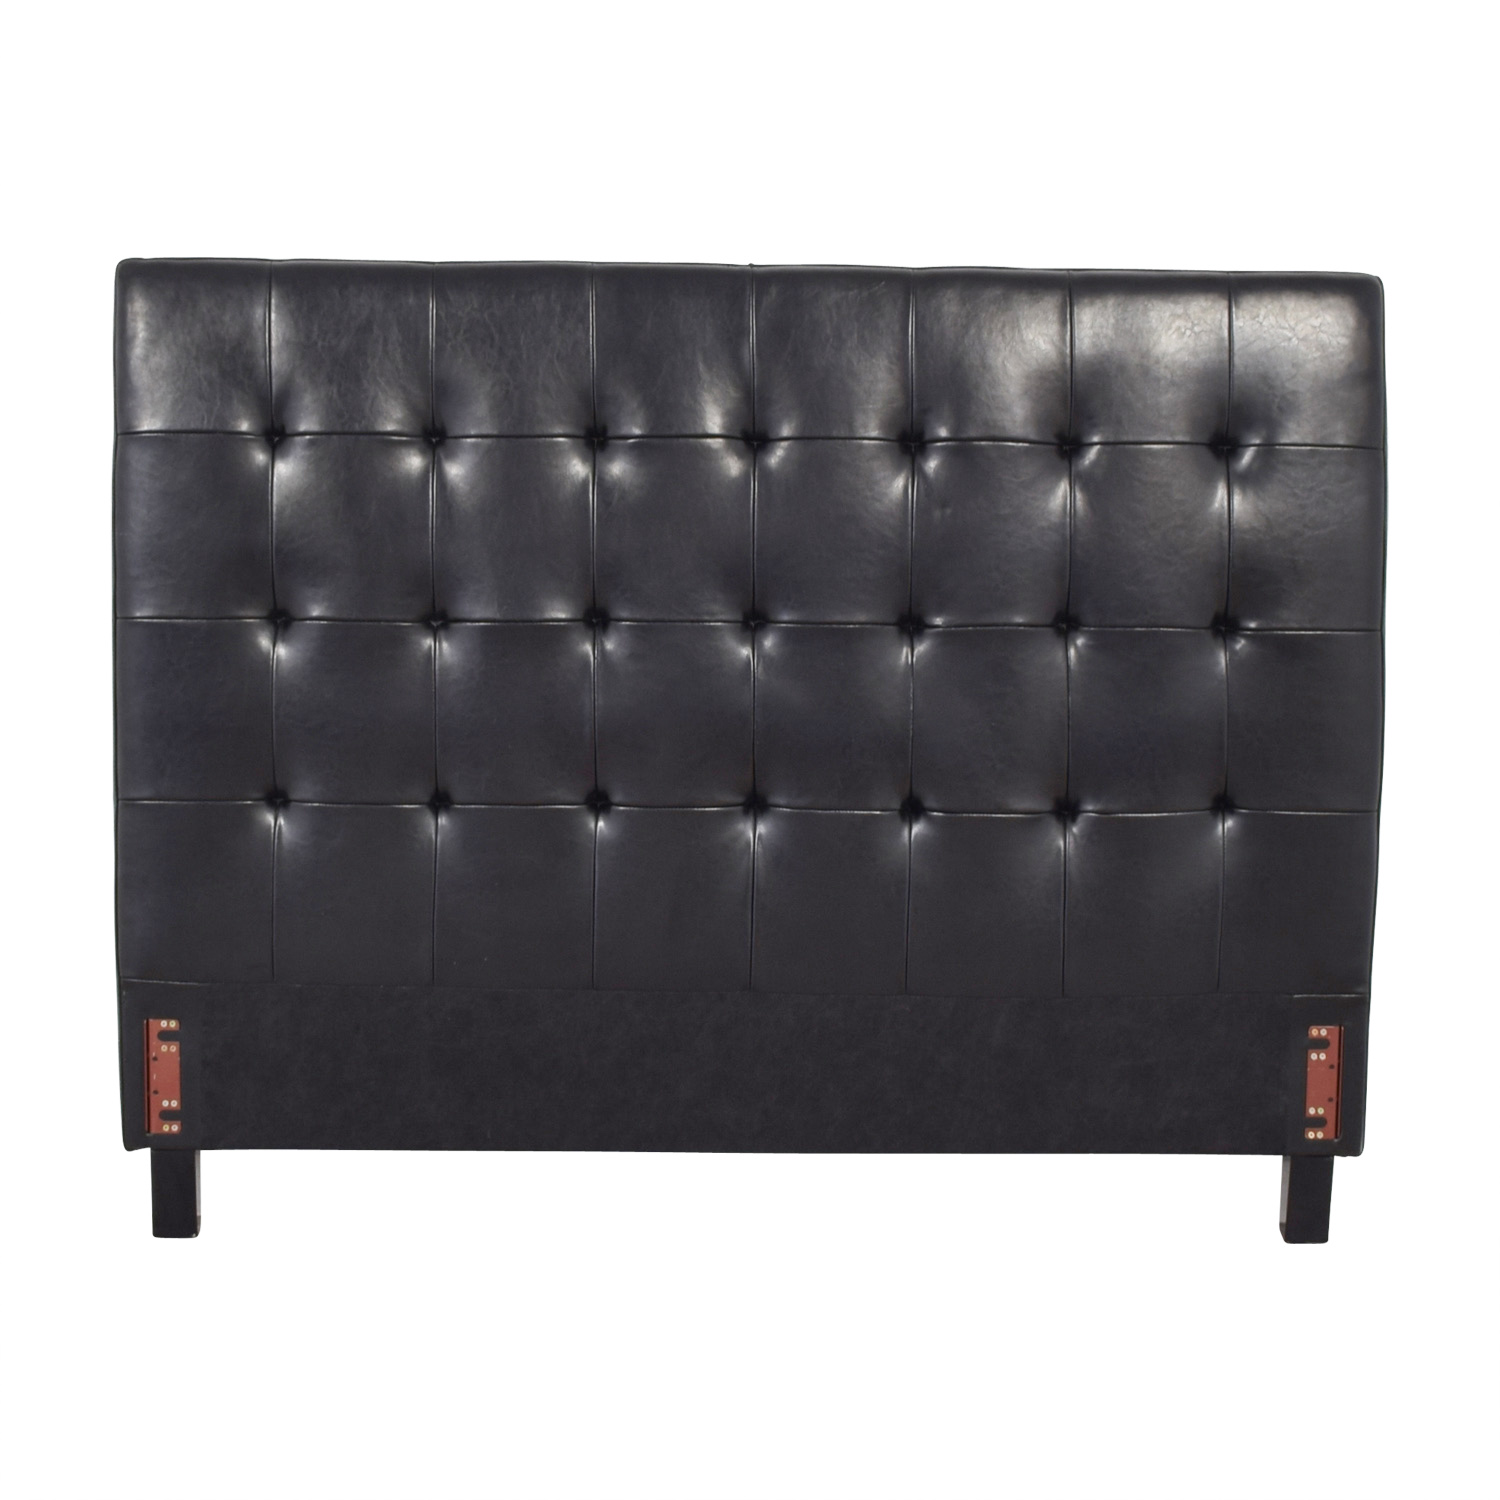 Pasha Pasha Tufted Black Leather Queen Headboard Black